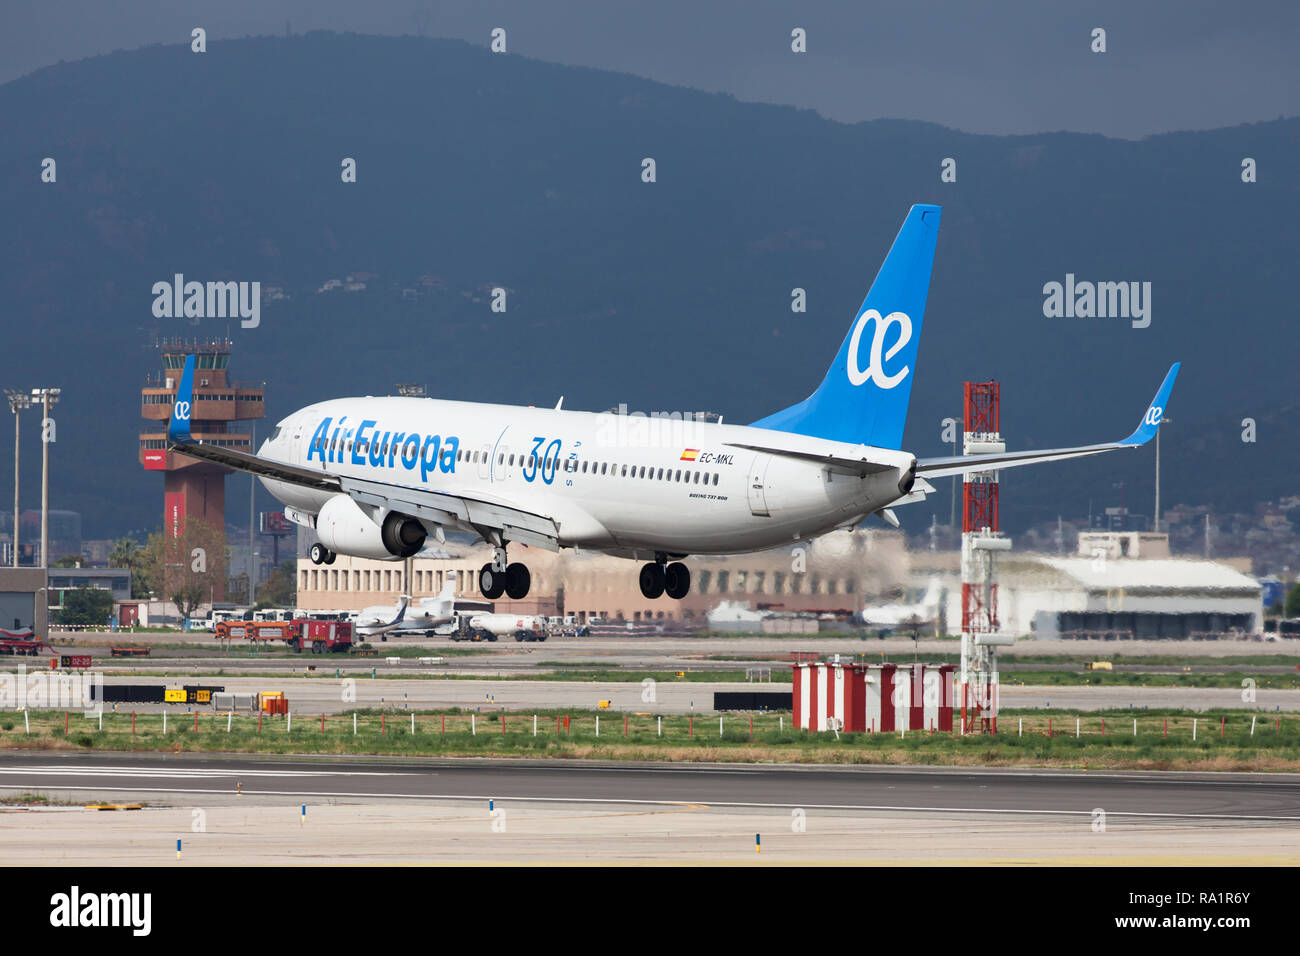 Barcelona, Spain - September 16, 2018: Air Europa Boeing 737-800 with 30 Years special livery landing at El Prat Airport in Barcelona, Spain. - Stock Image